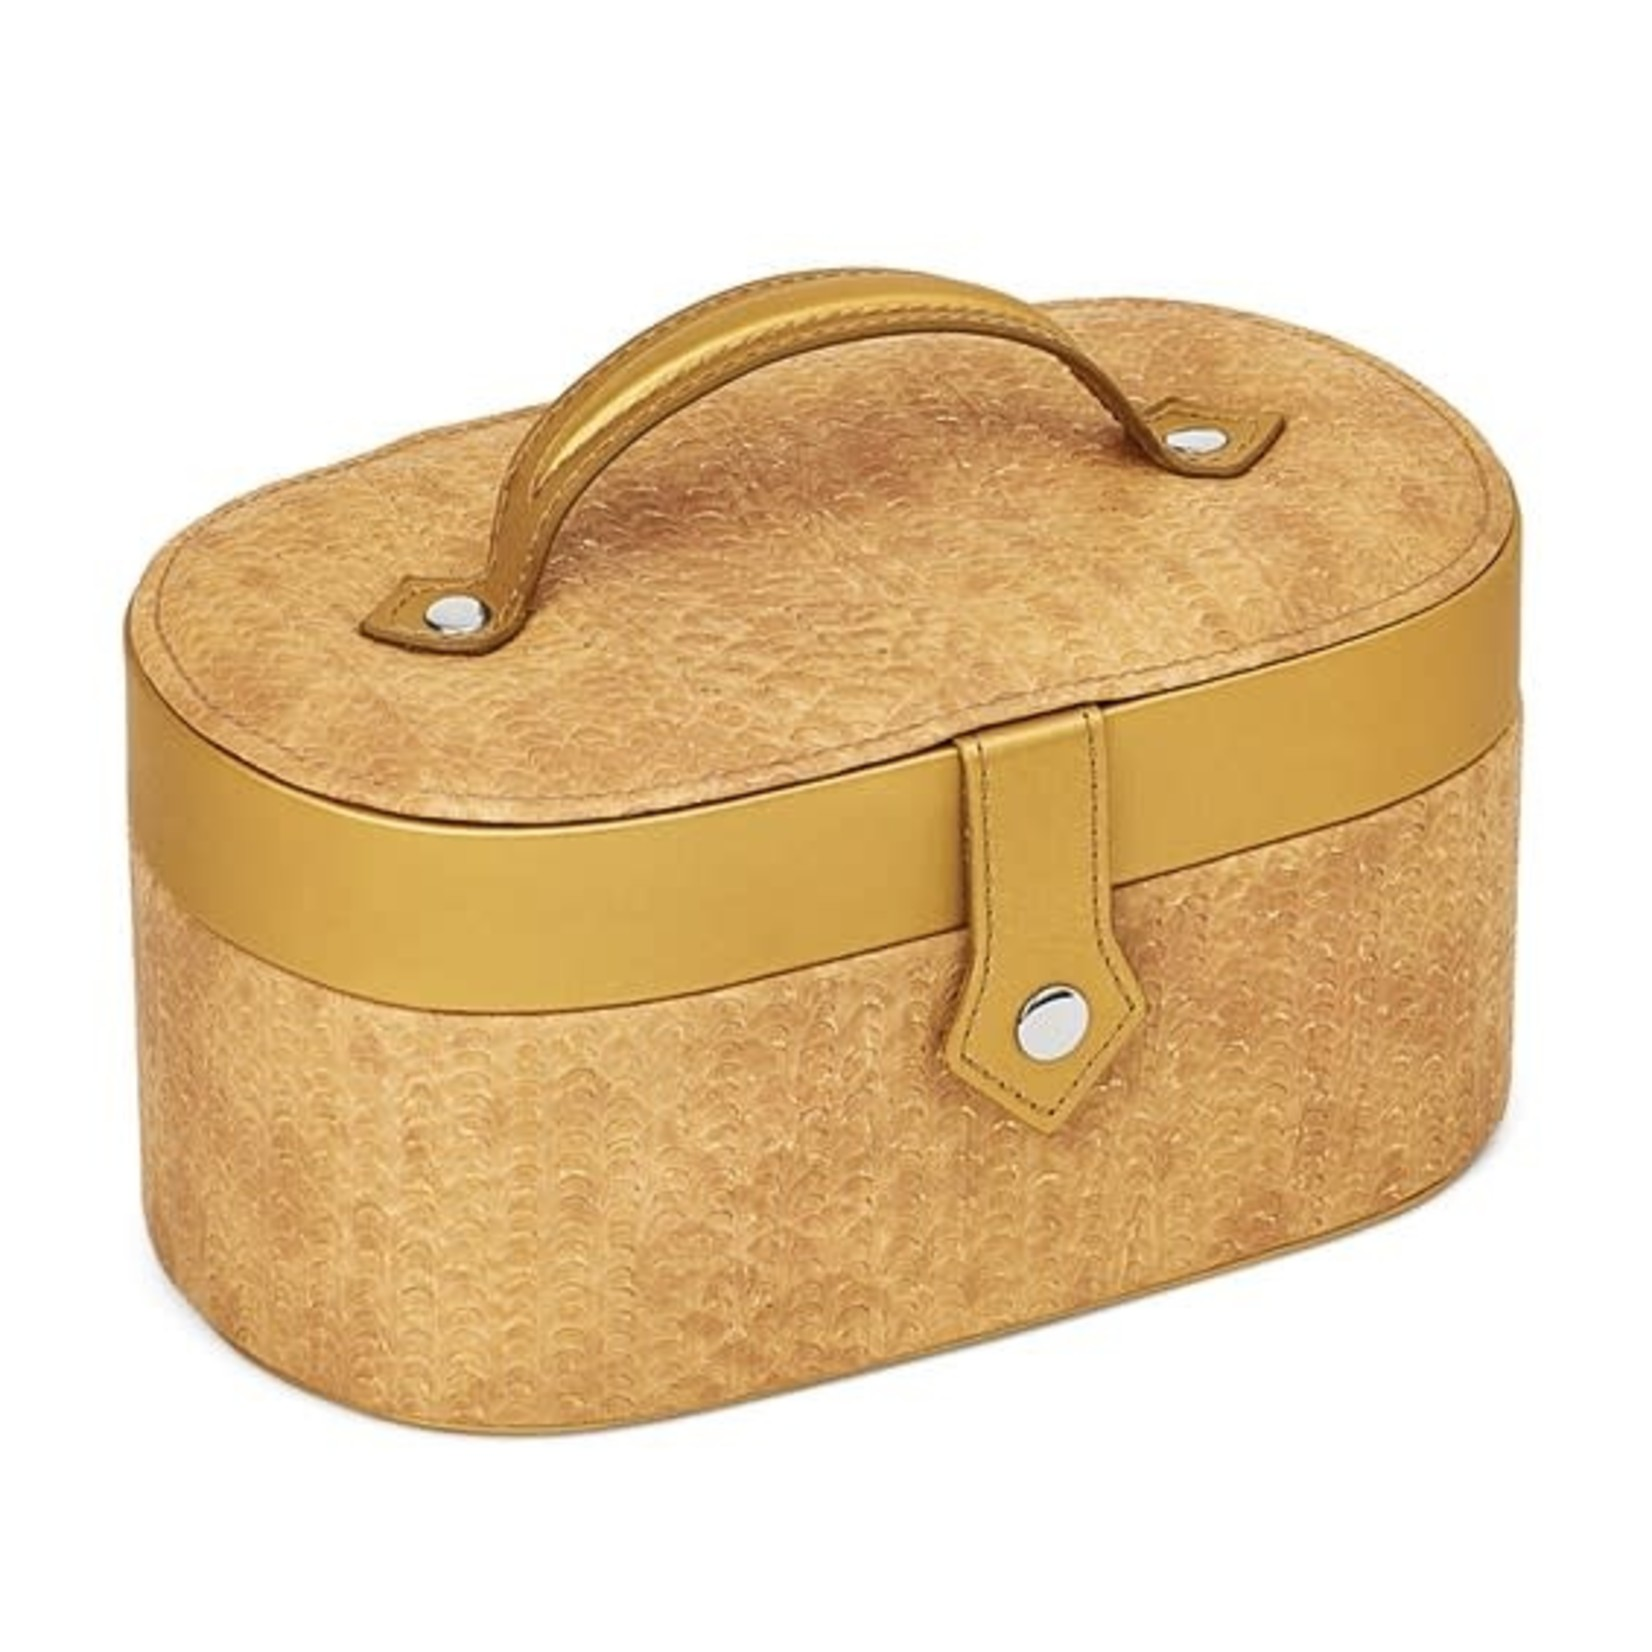 Gold Textured Pattern Oval Jewelry Case